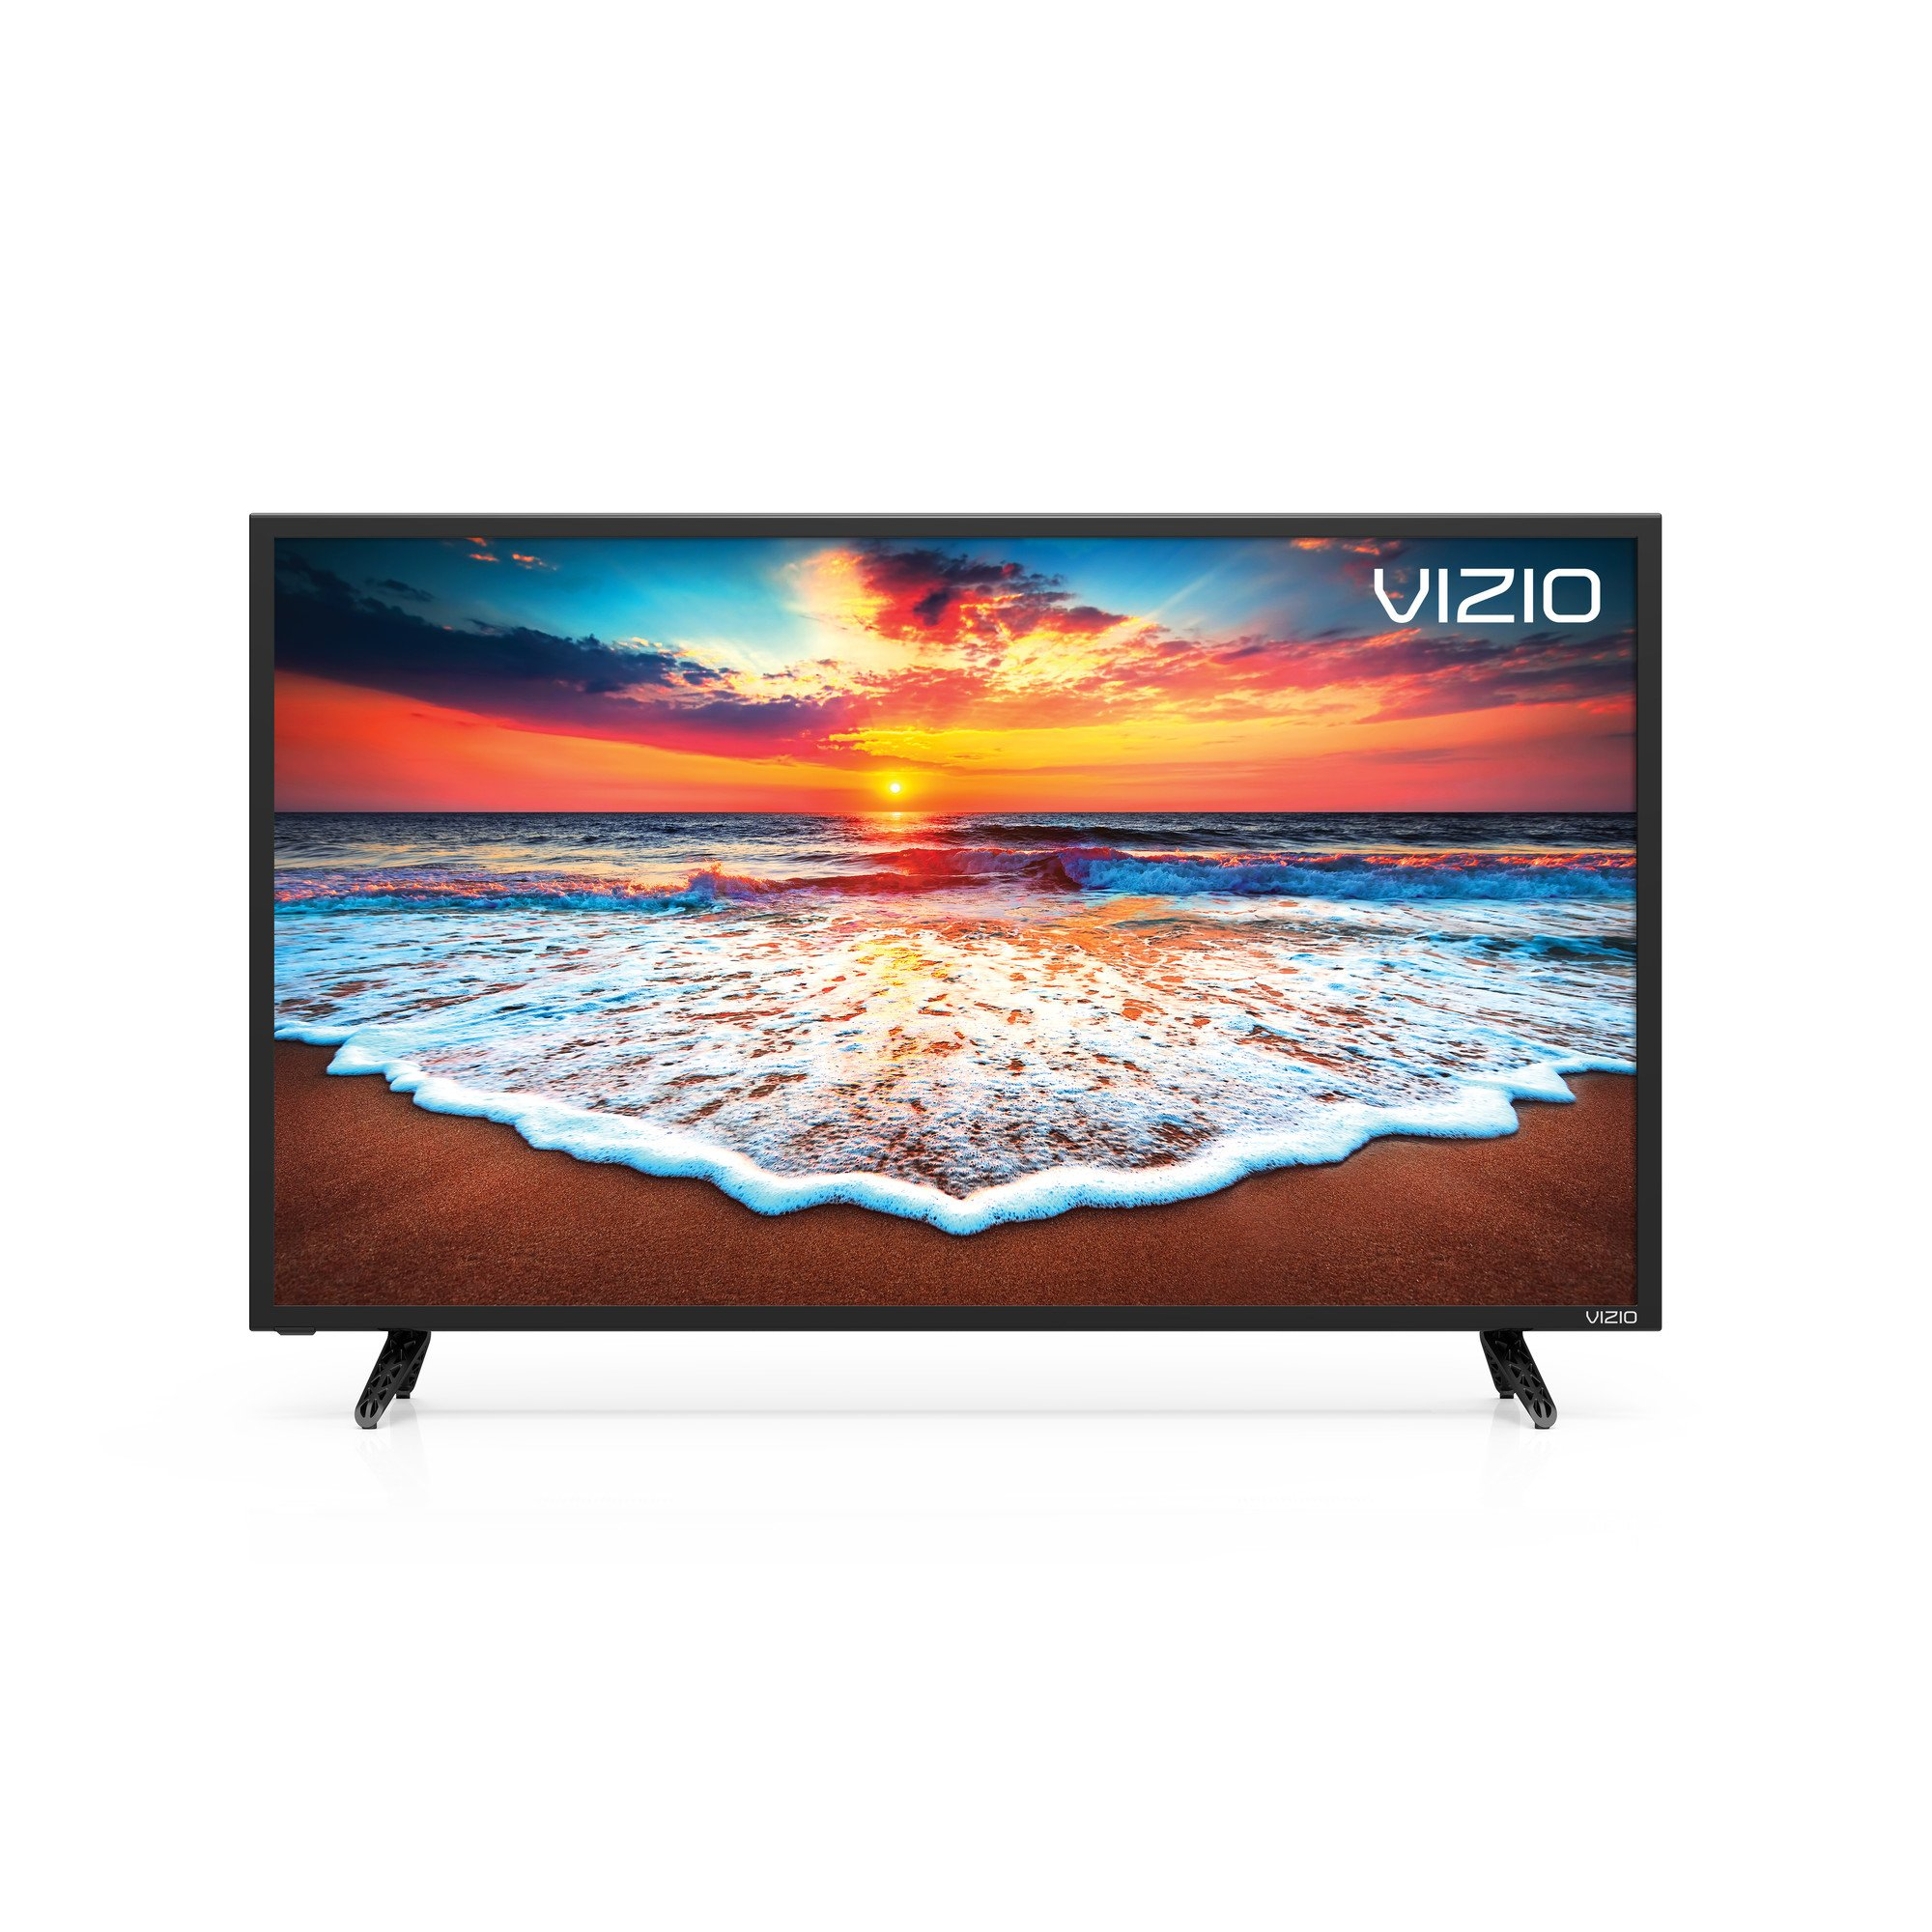 VIZIO SMARTCAST E-SERIES 32IN CLASS TV HIDEF